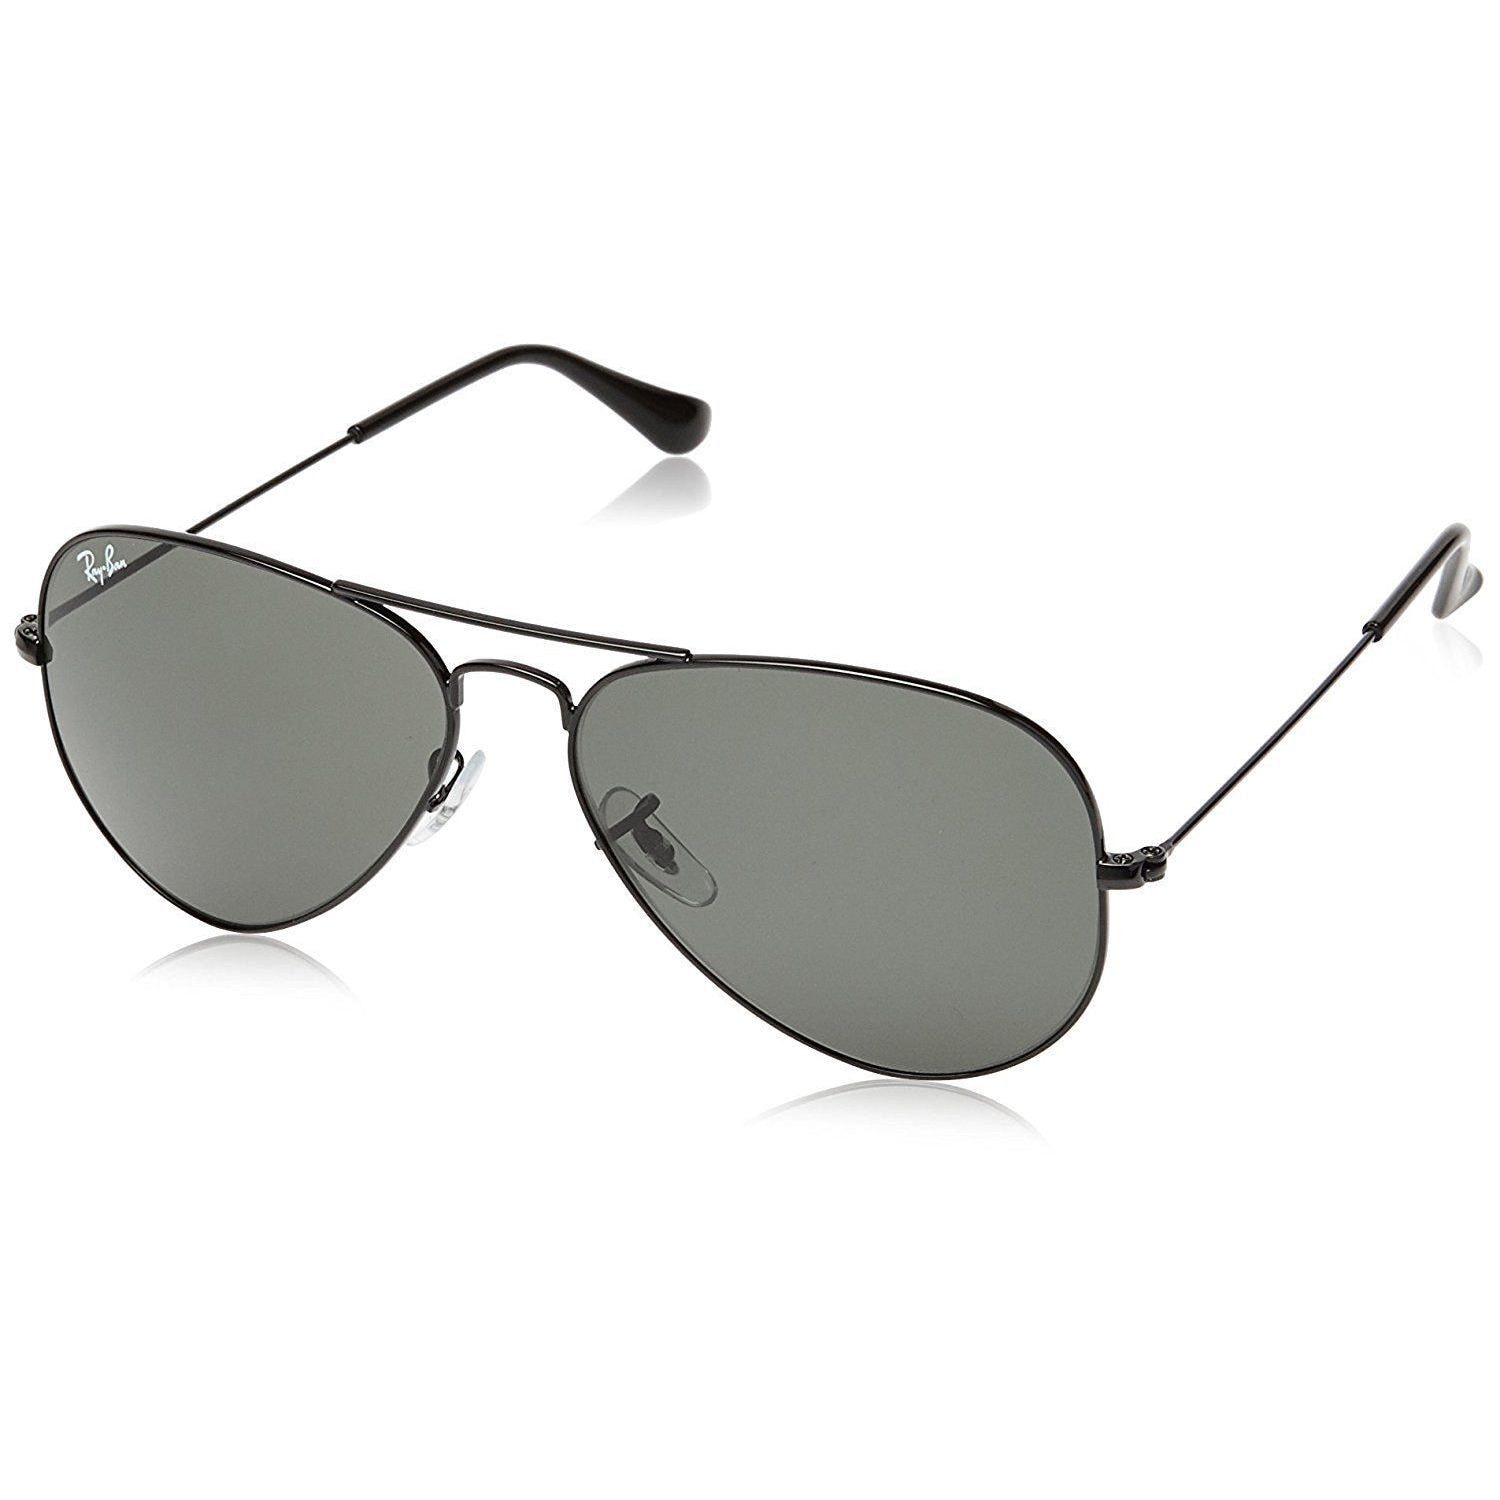 3aa8b40d124 Shop Ray Ban Aviator RB3025 L2823 58-14 Unisex Black Frame Green Classic  G15 Lens Sunglasses - Ships To Canada - Overstock.ca - 17031557